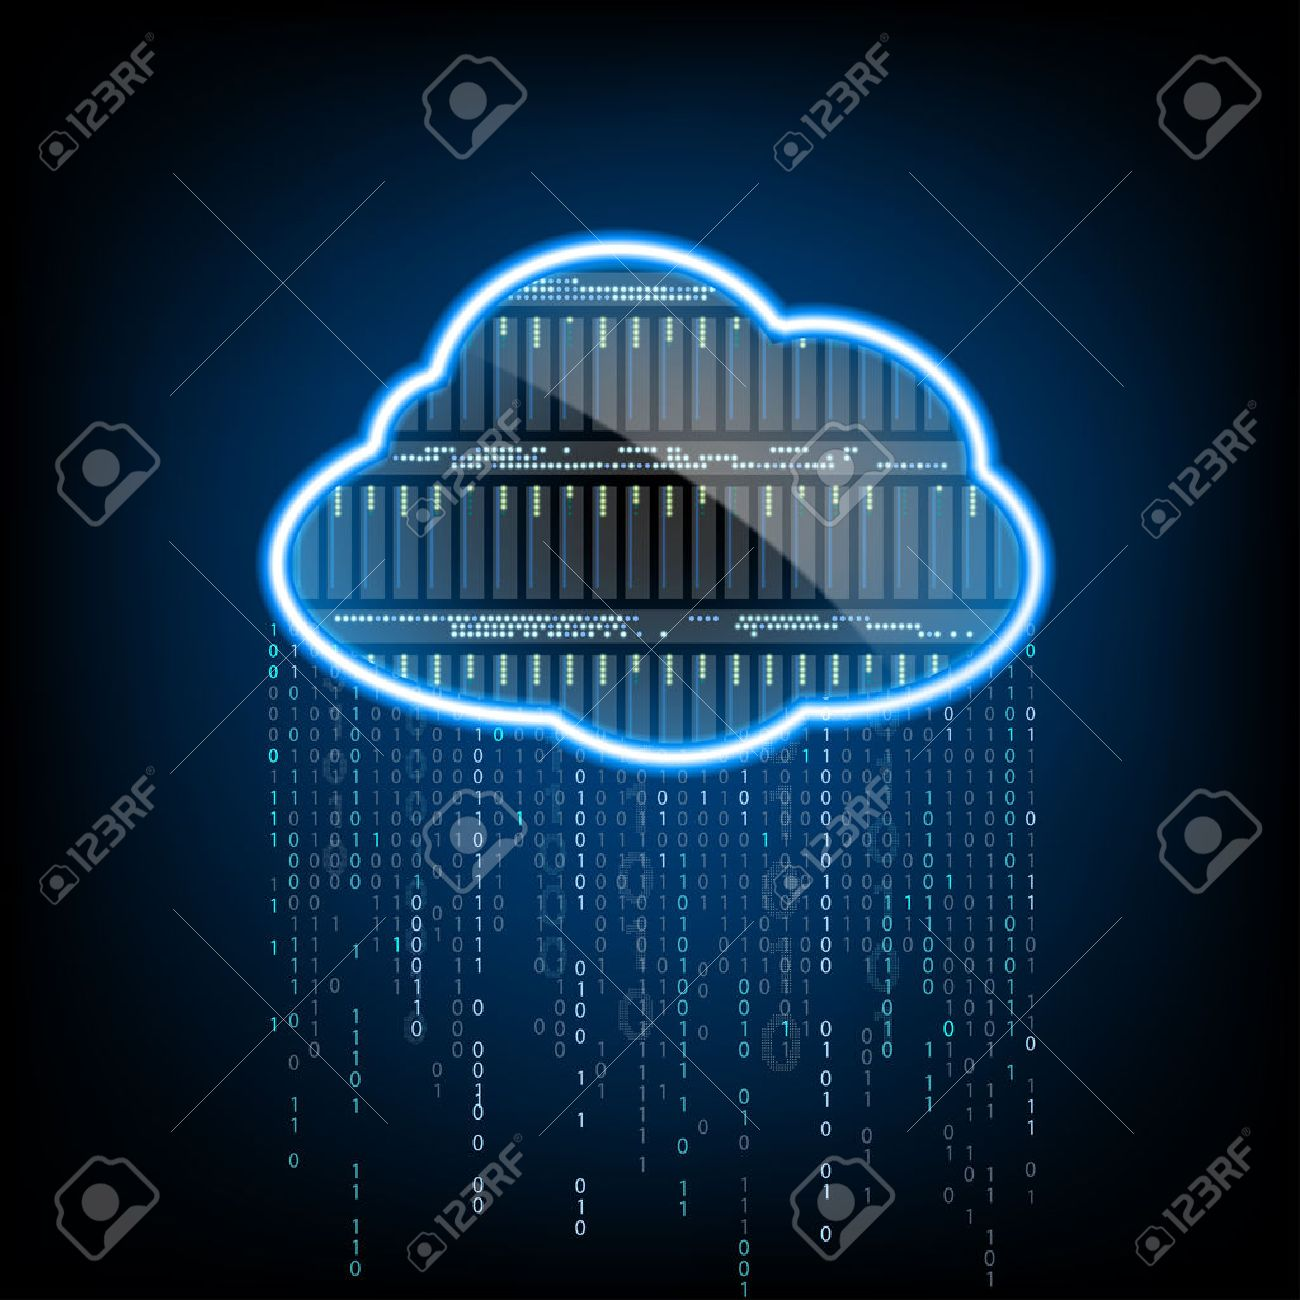 Cloud computing. Server for data storage. Abstract technology background. Stock vector illustration. - 55927842